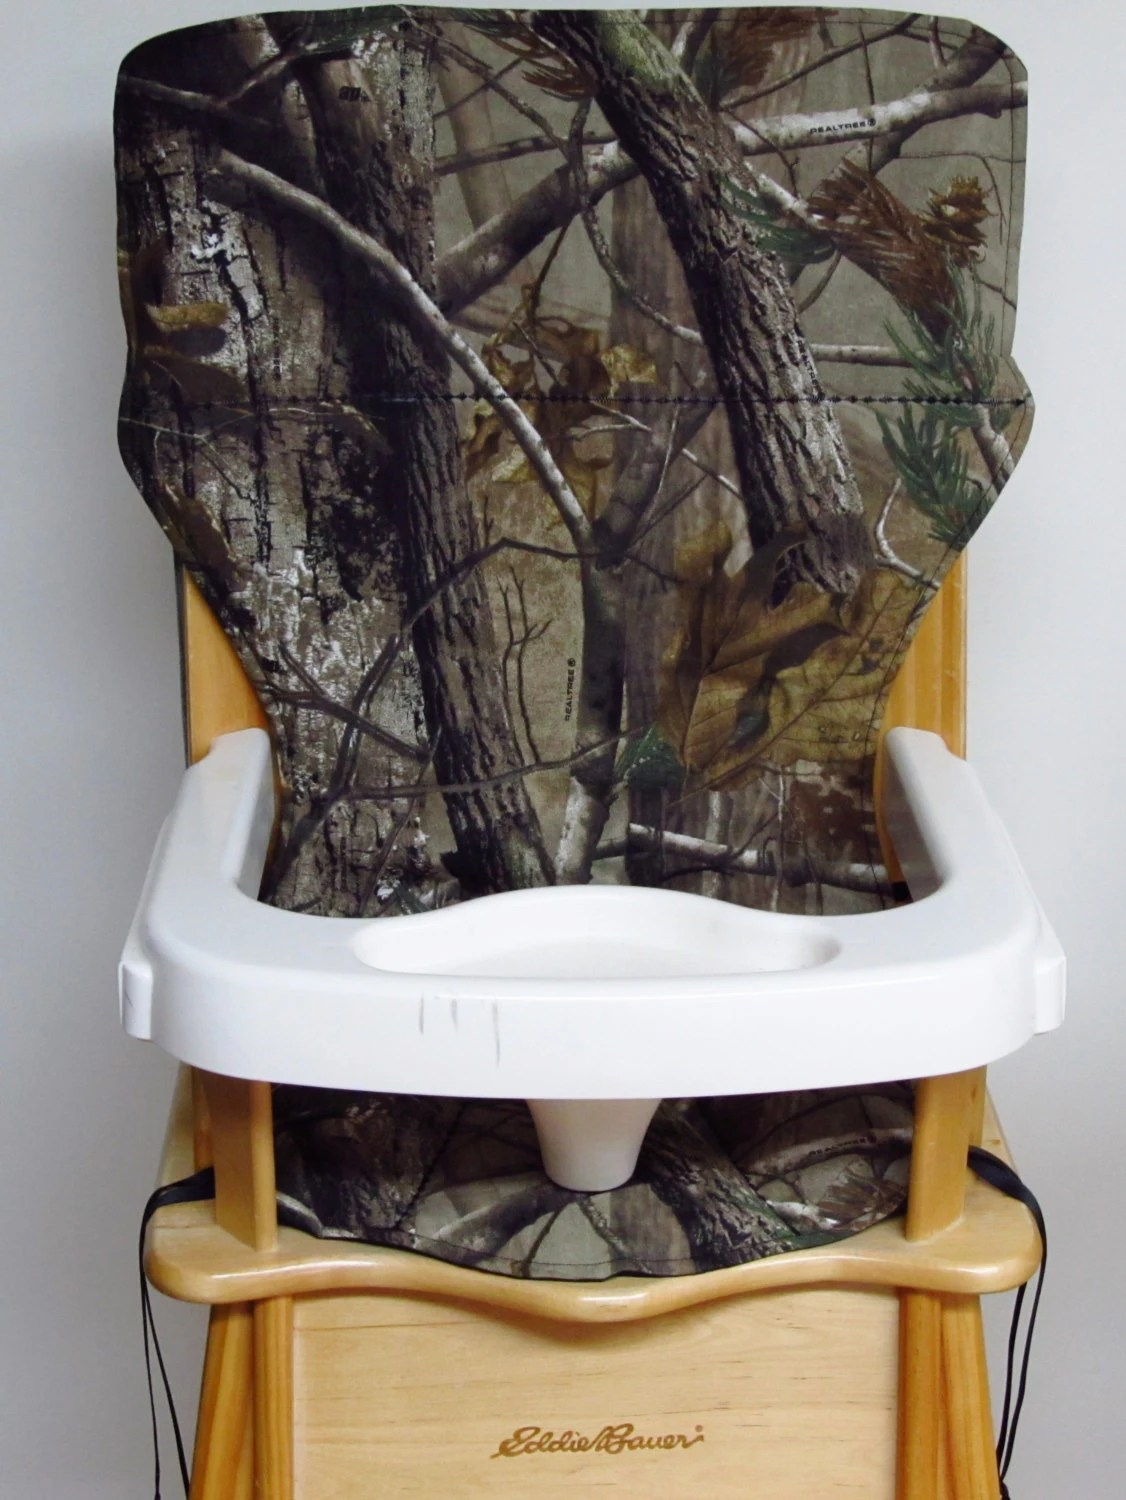 High Chair Covers Eddie Bauer Replacement High Chair Padhigh Chair Cover Real